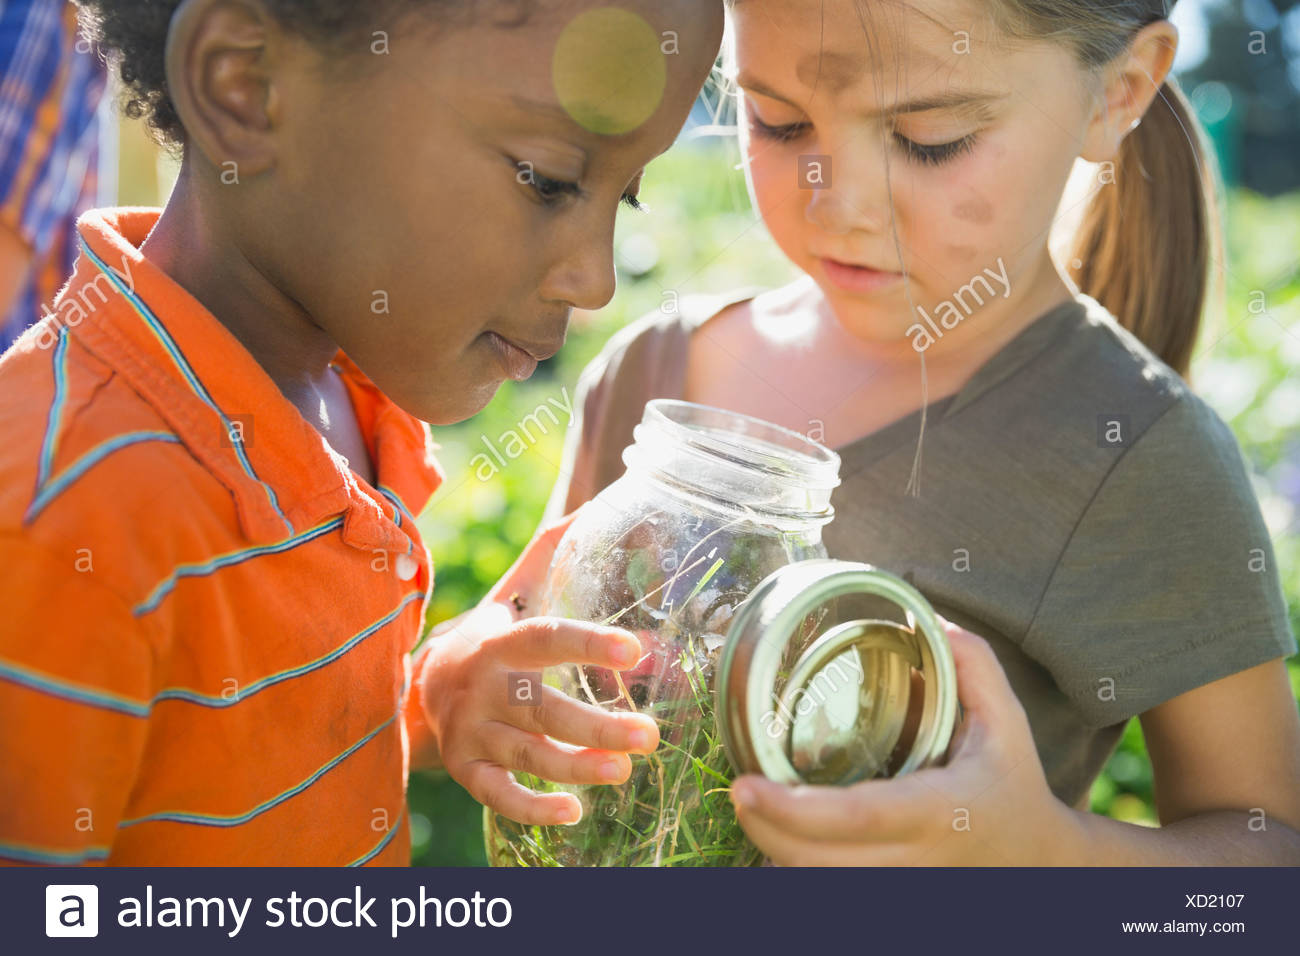 Kids looking at bugs in jar - Stock Image